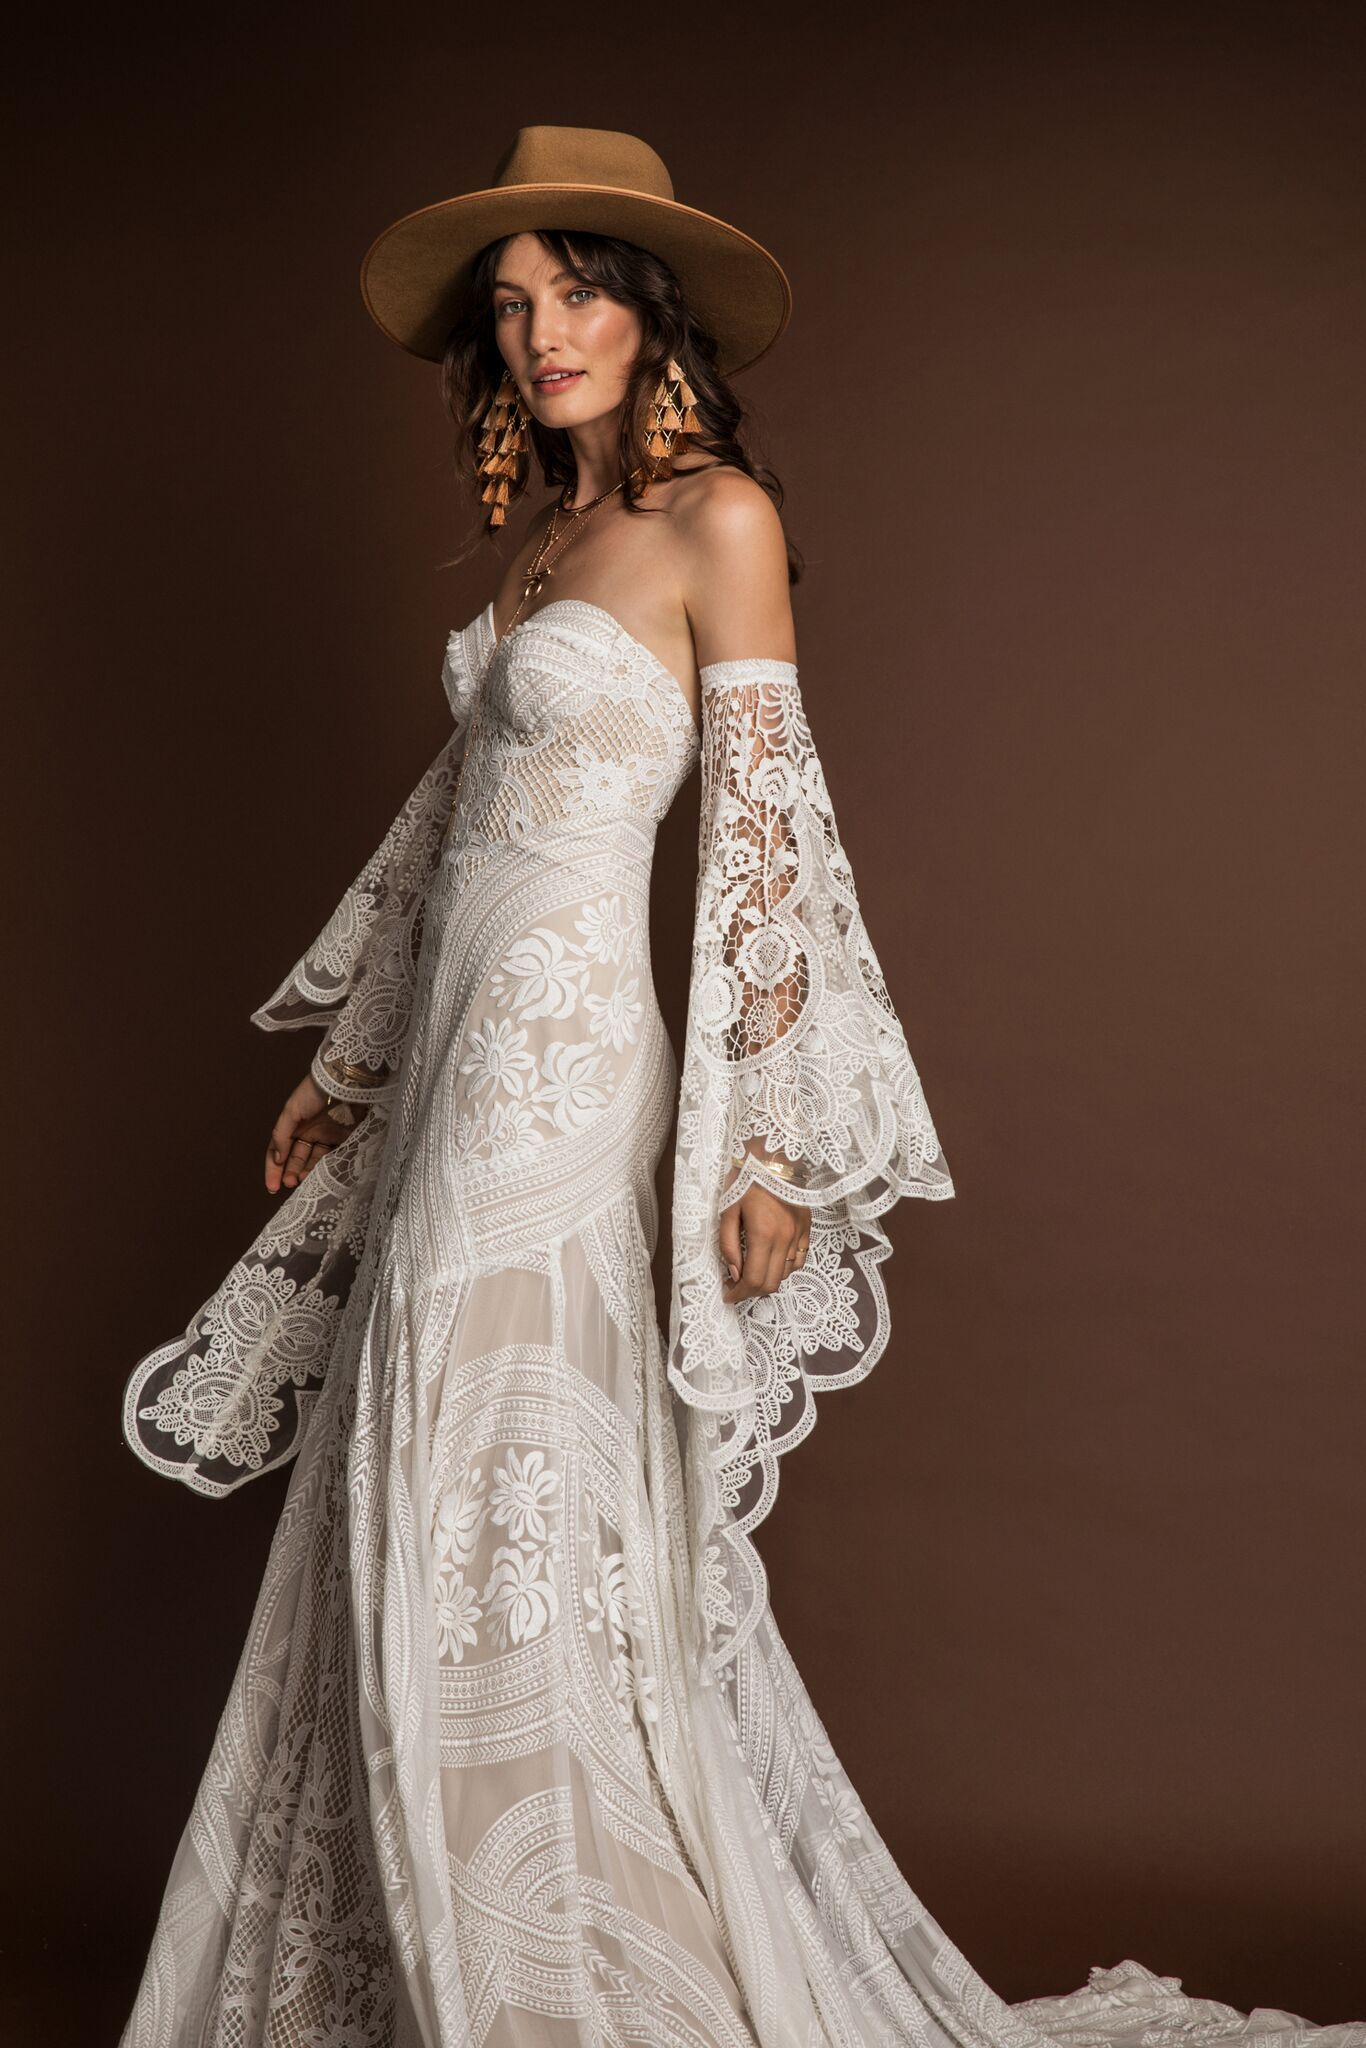 New Rue De Seine Wedding Dresses + Trunk Shows #romanticlace